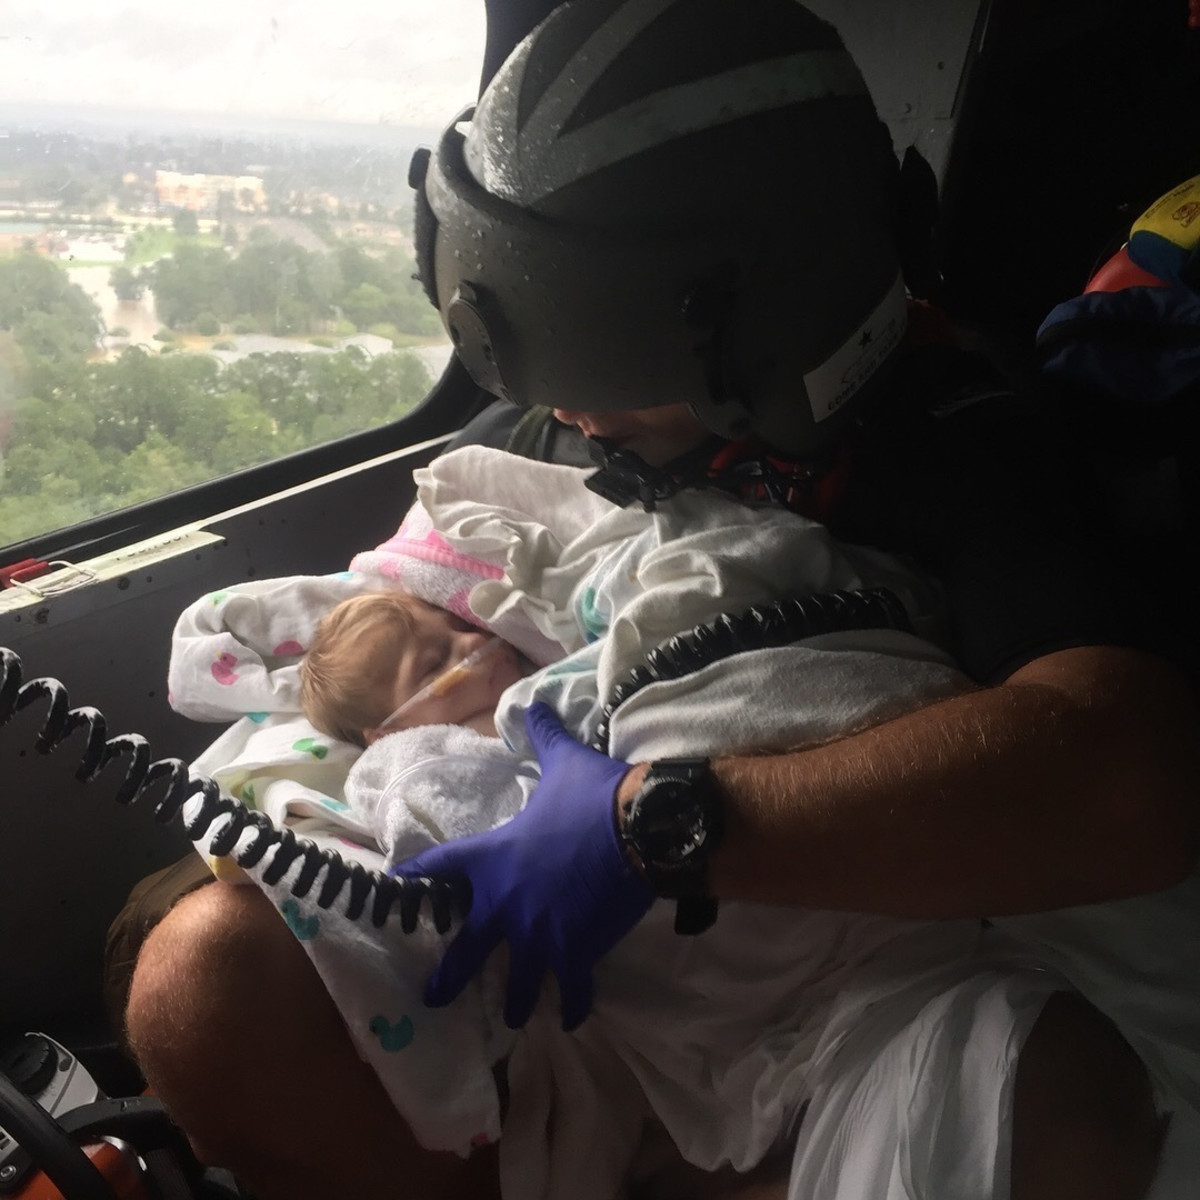 A Coast Guard aircrewman holds an infant during the aftermath of Hurricane Harvey